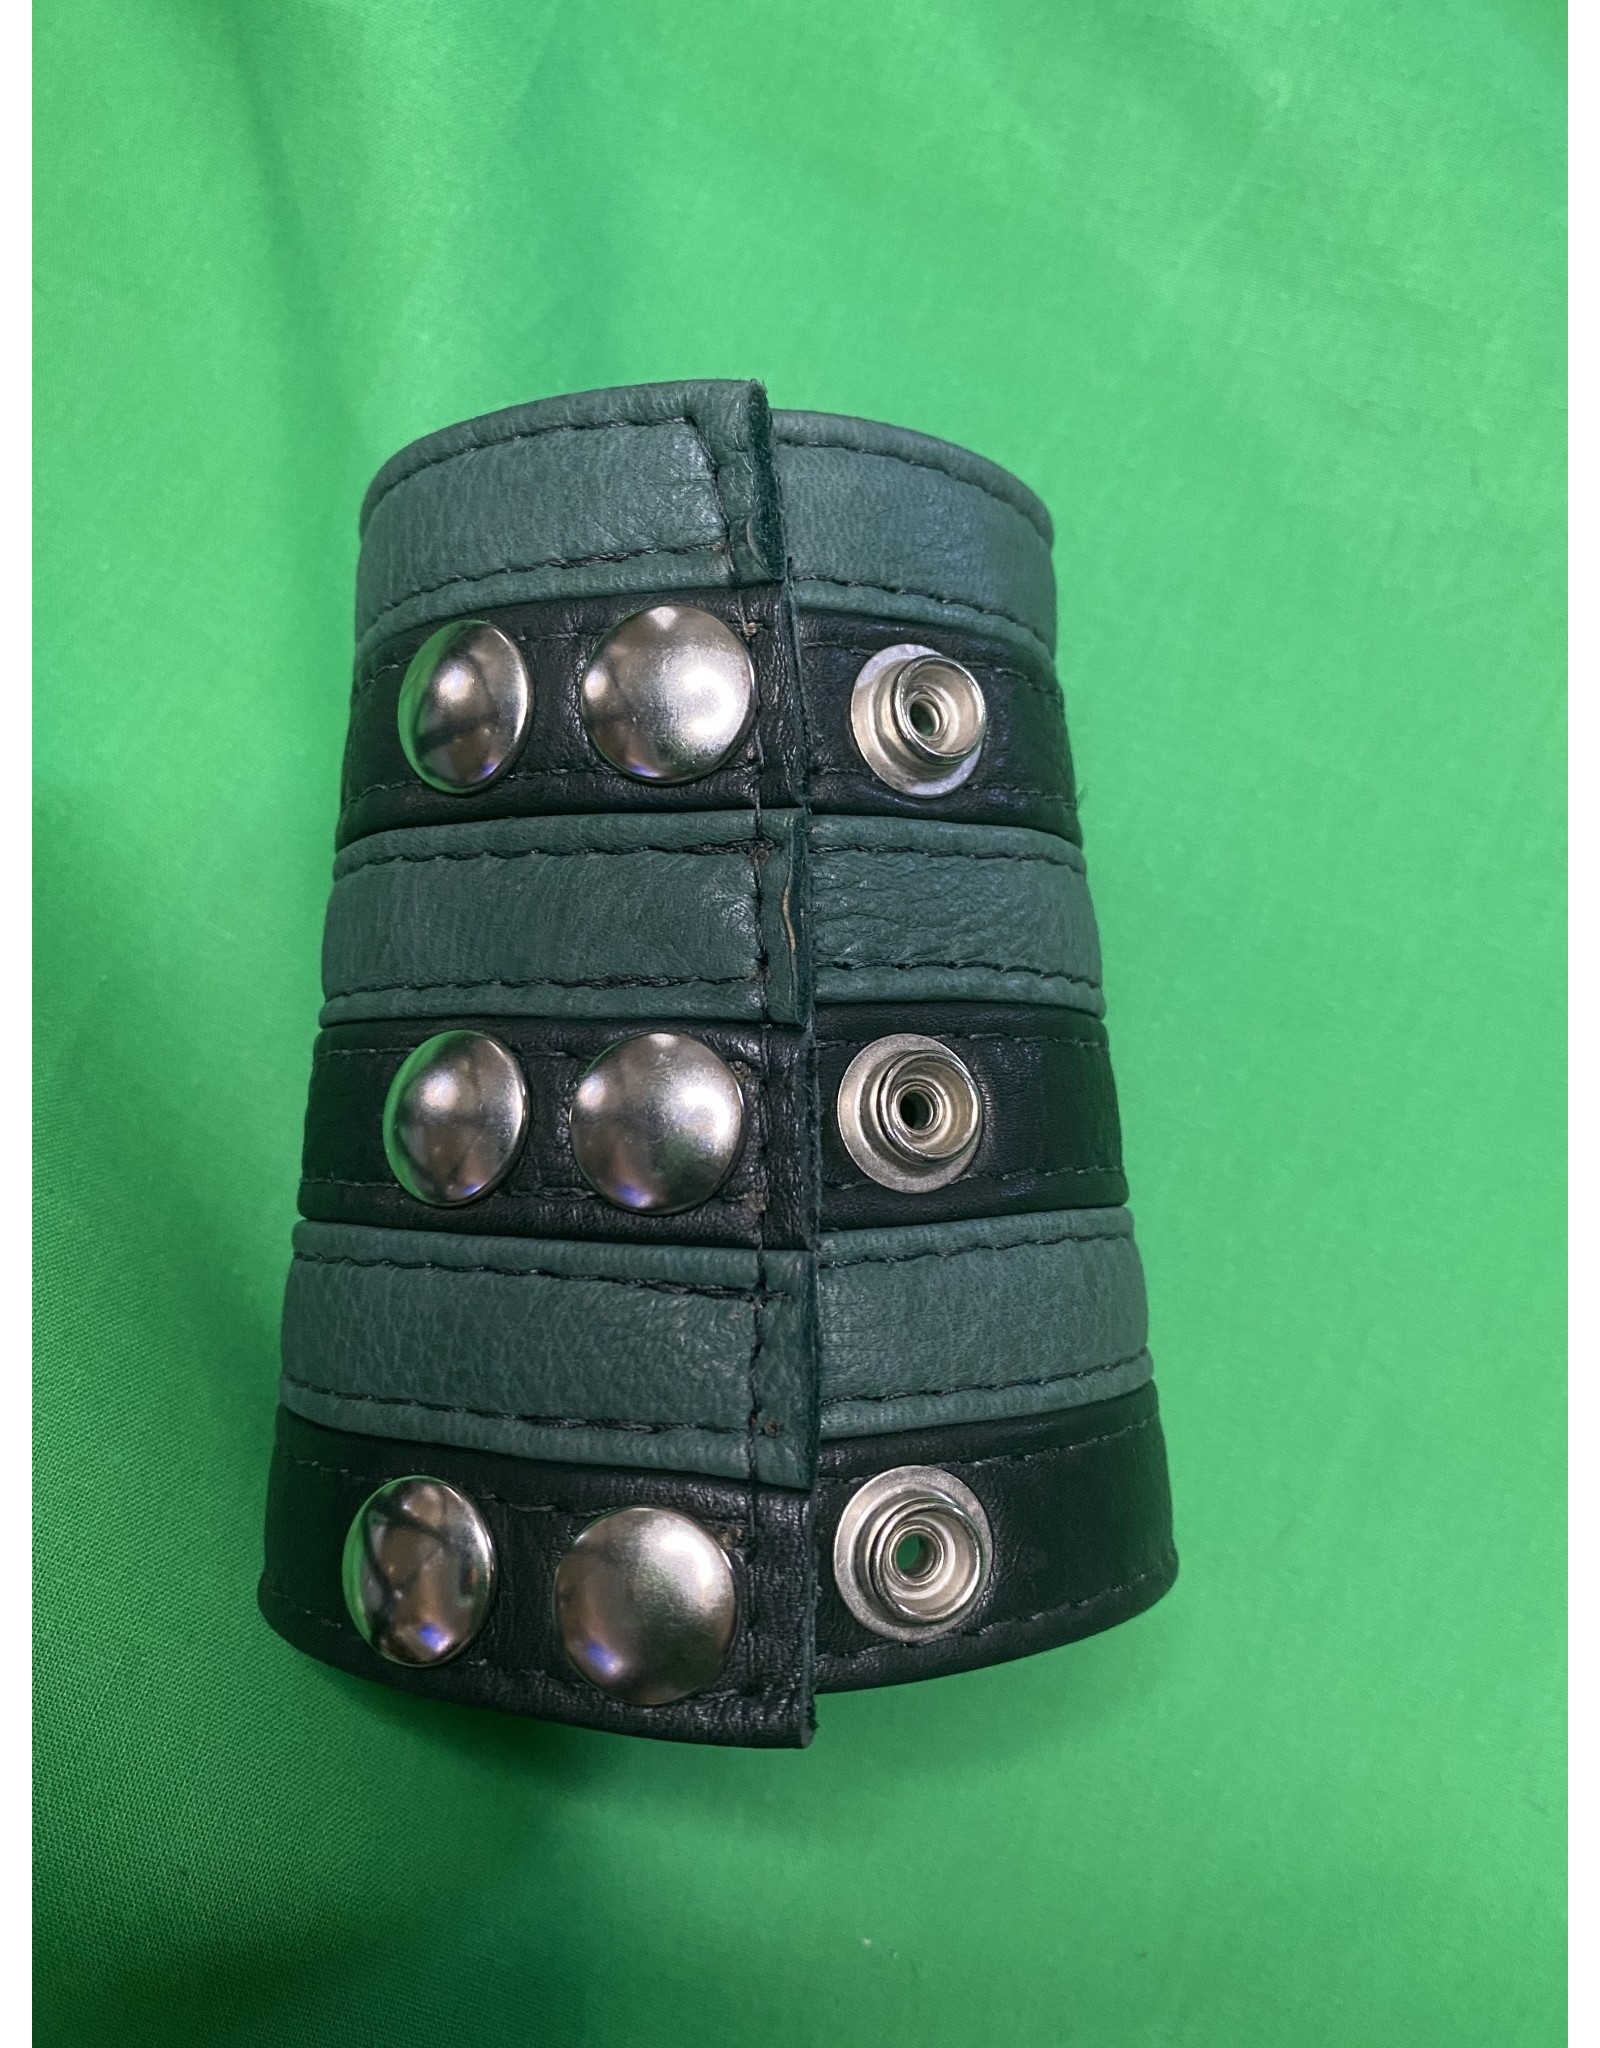 The Leather Union Gauntlet